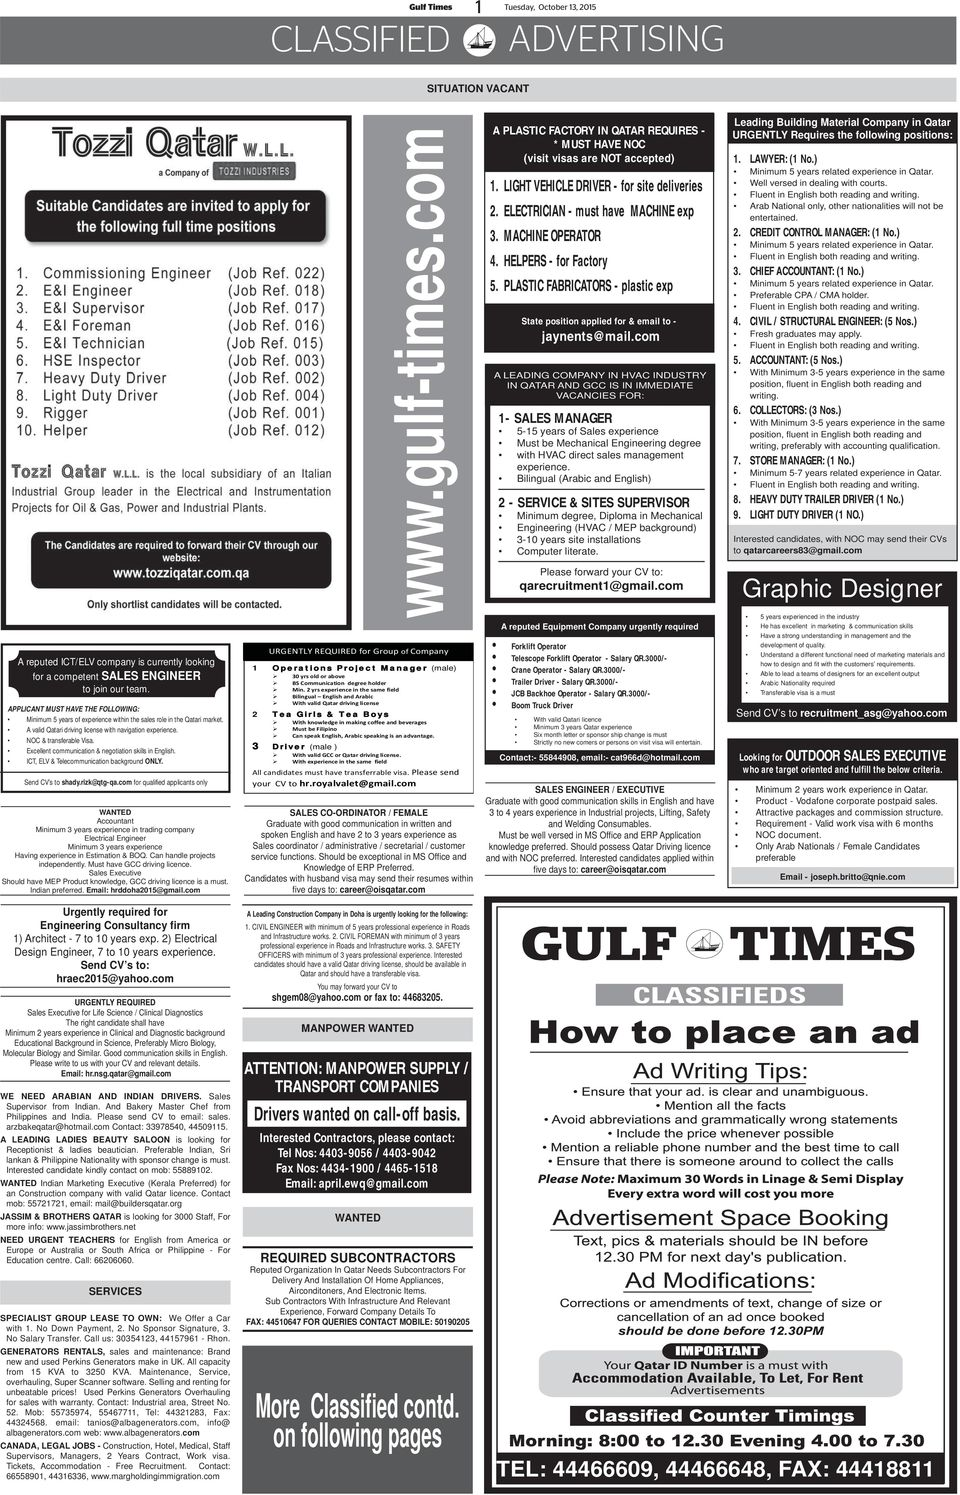 Gulf Times Situation Vacant Pdf